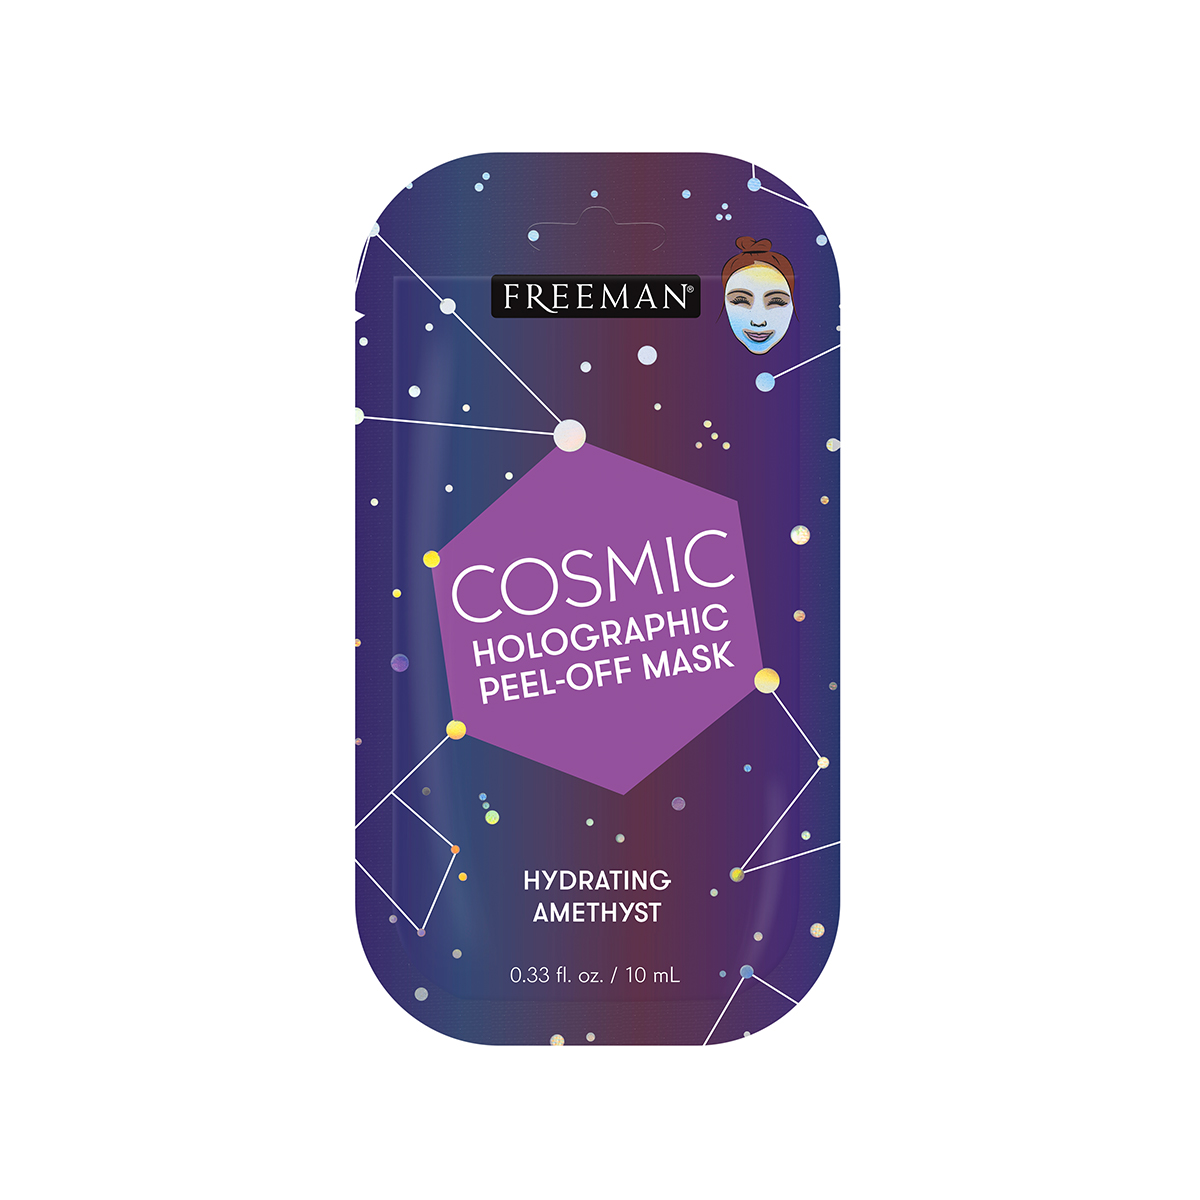 Увлажняющая маска-пленка Freeman Cosmic Hydrating Amethyst Holographic Peel-Off Mask 10 мл